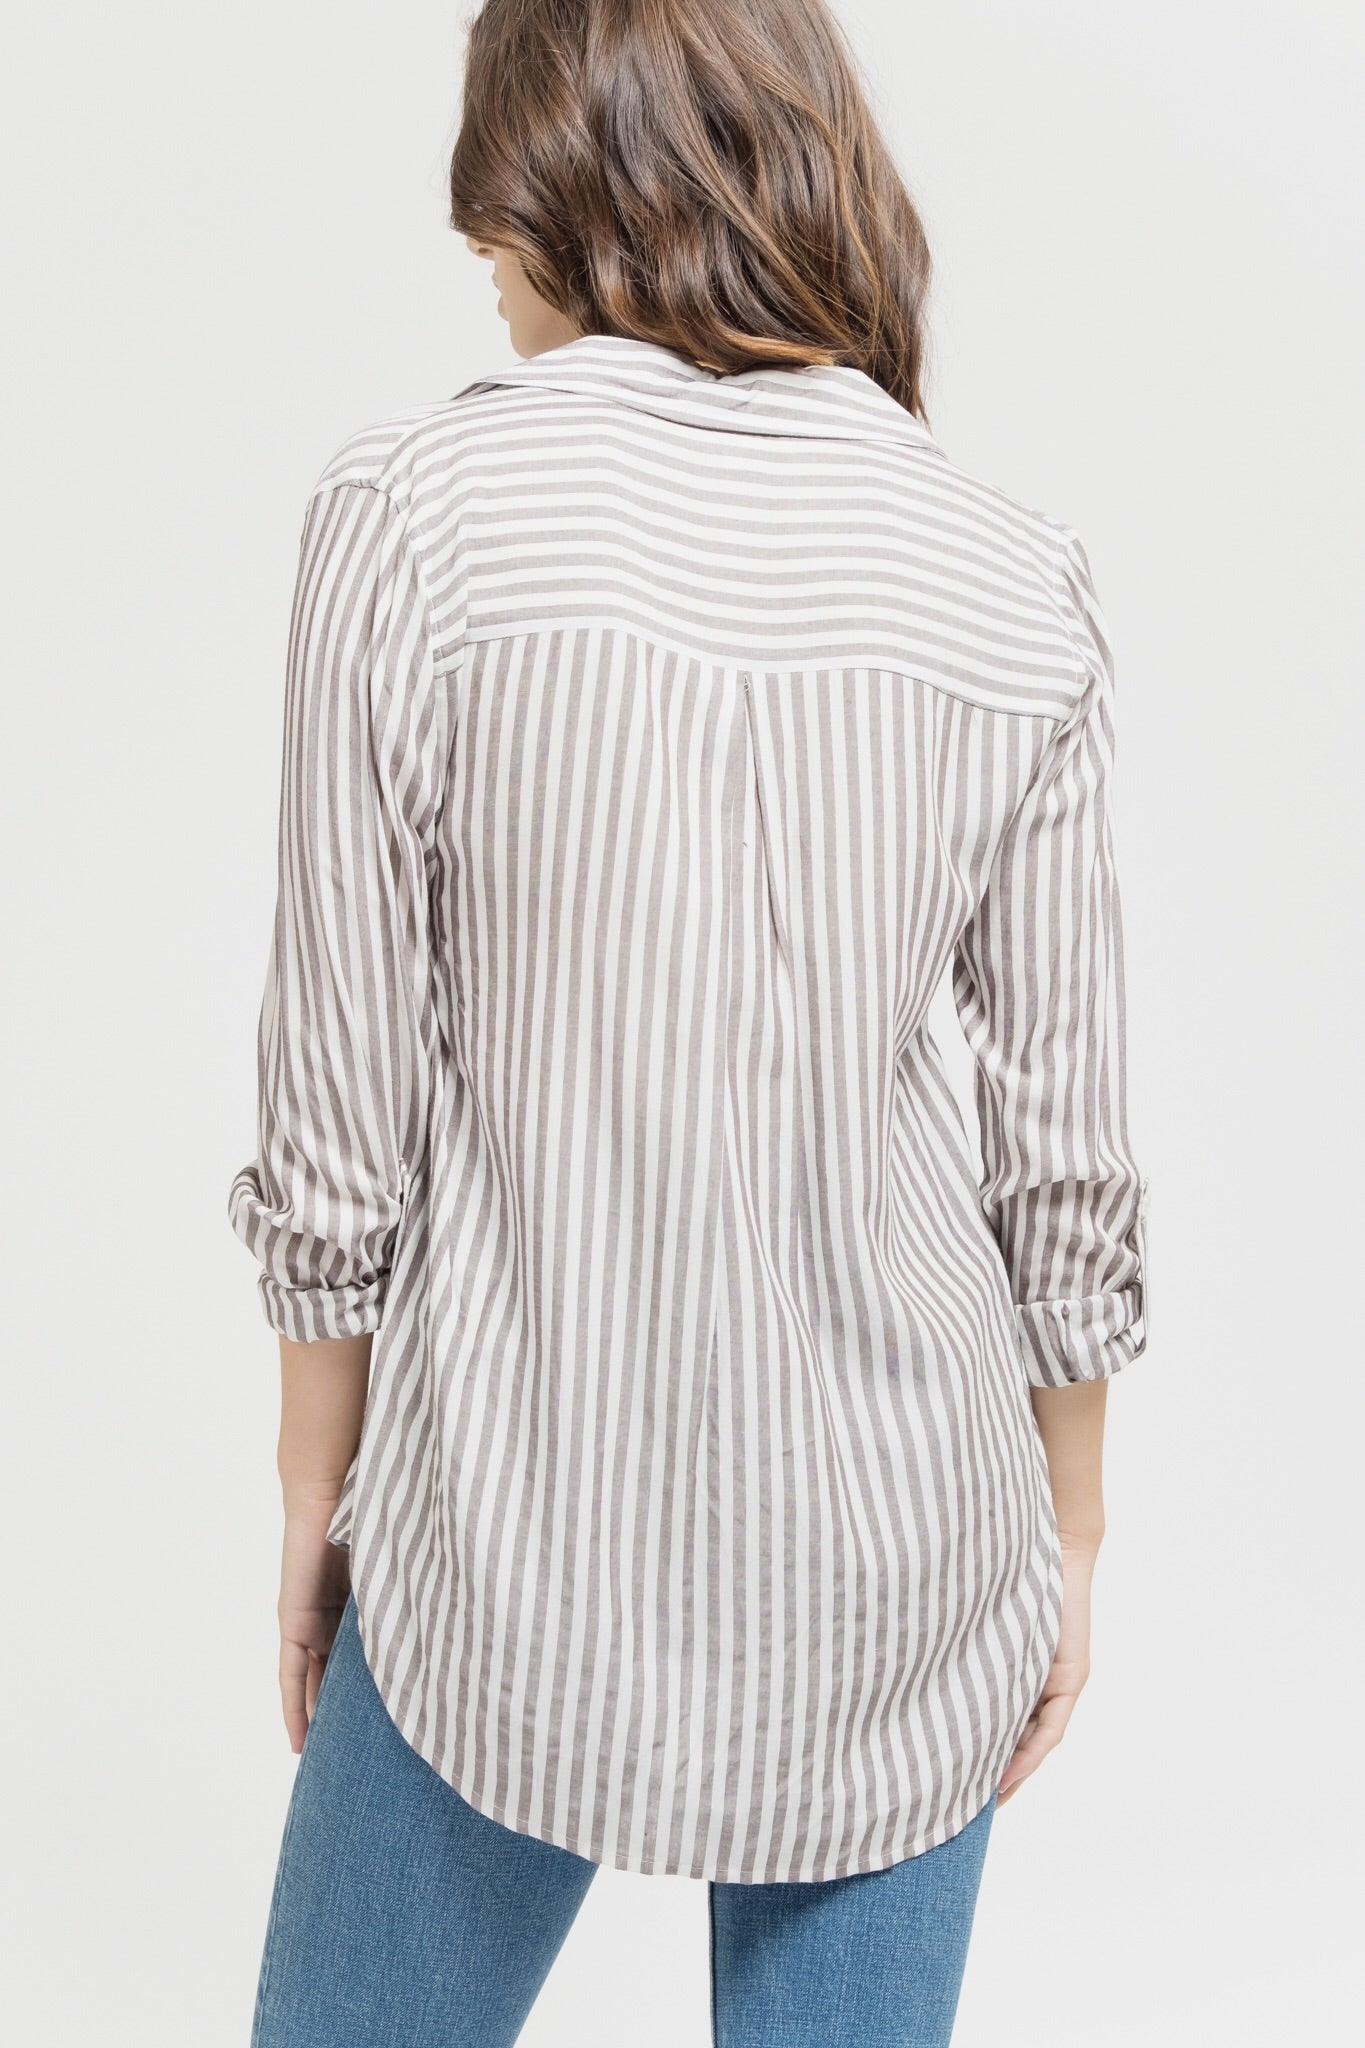 Woven Button Up Striped Top